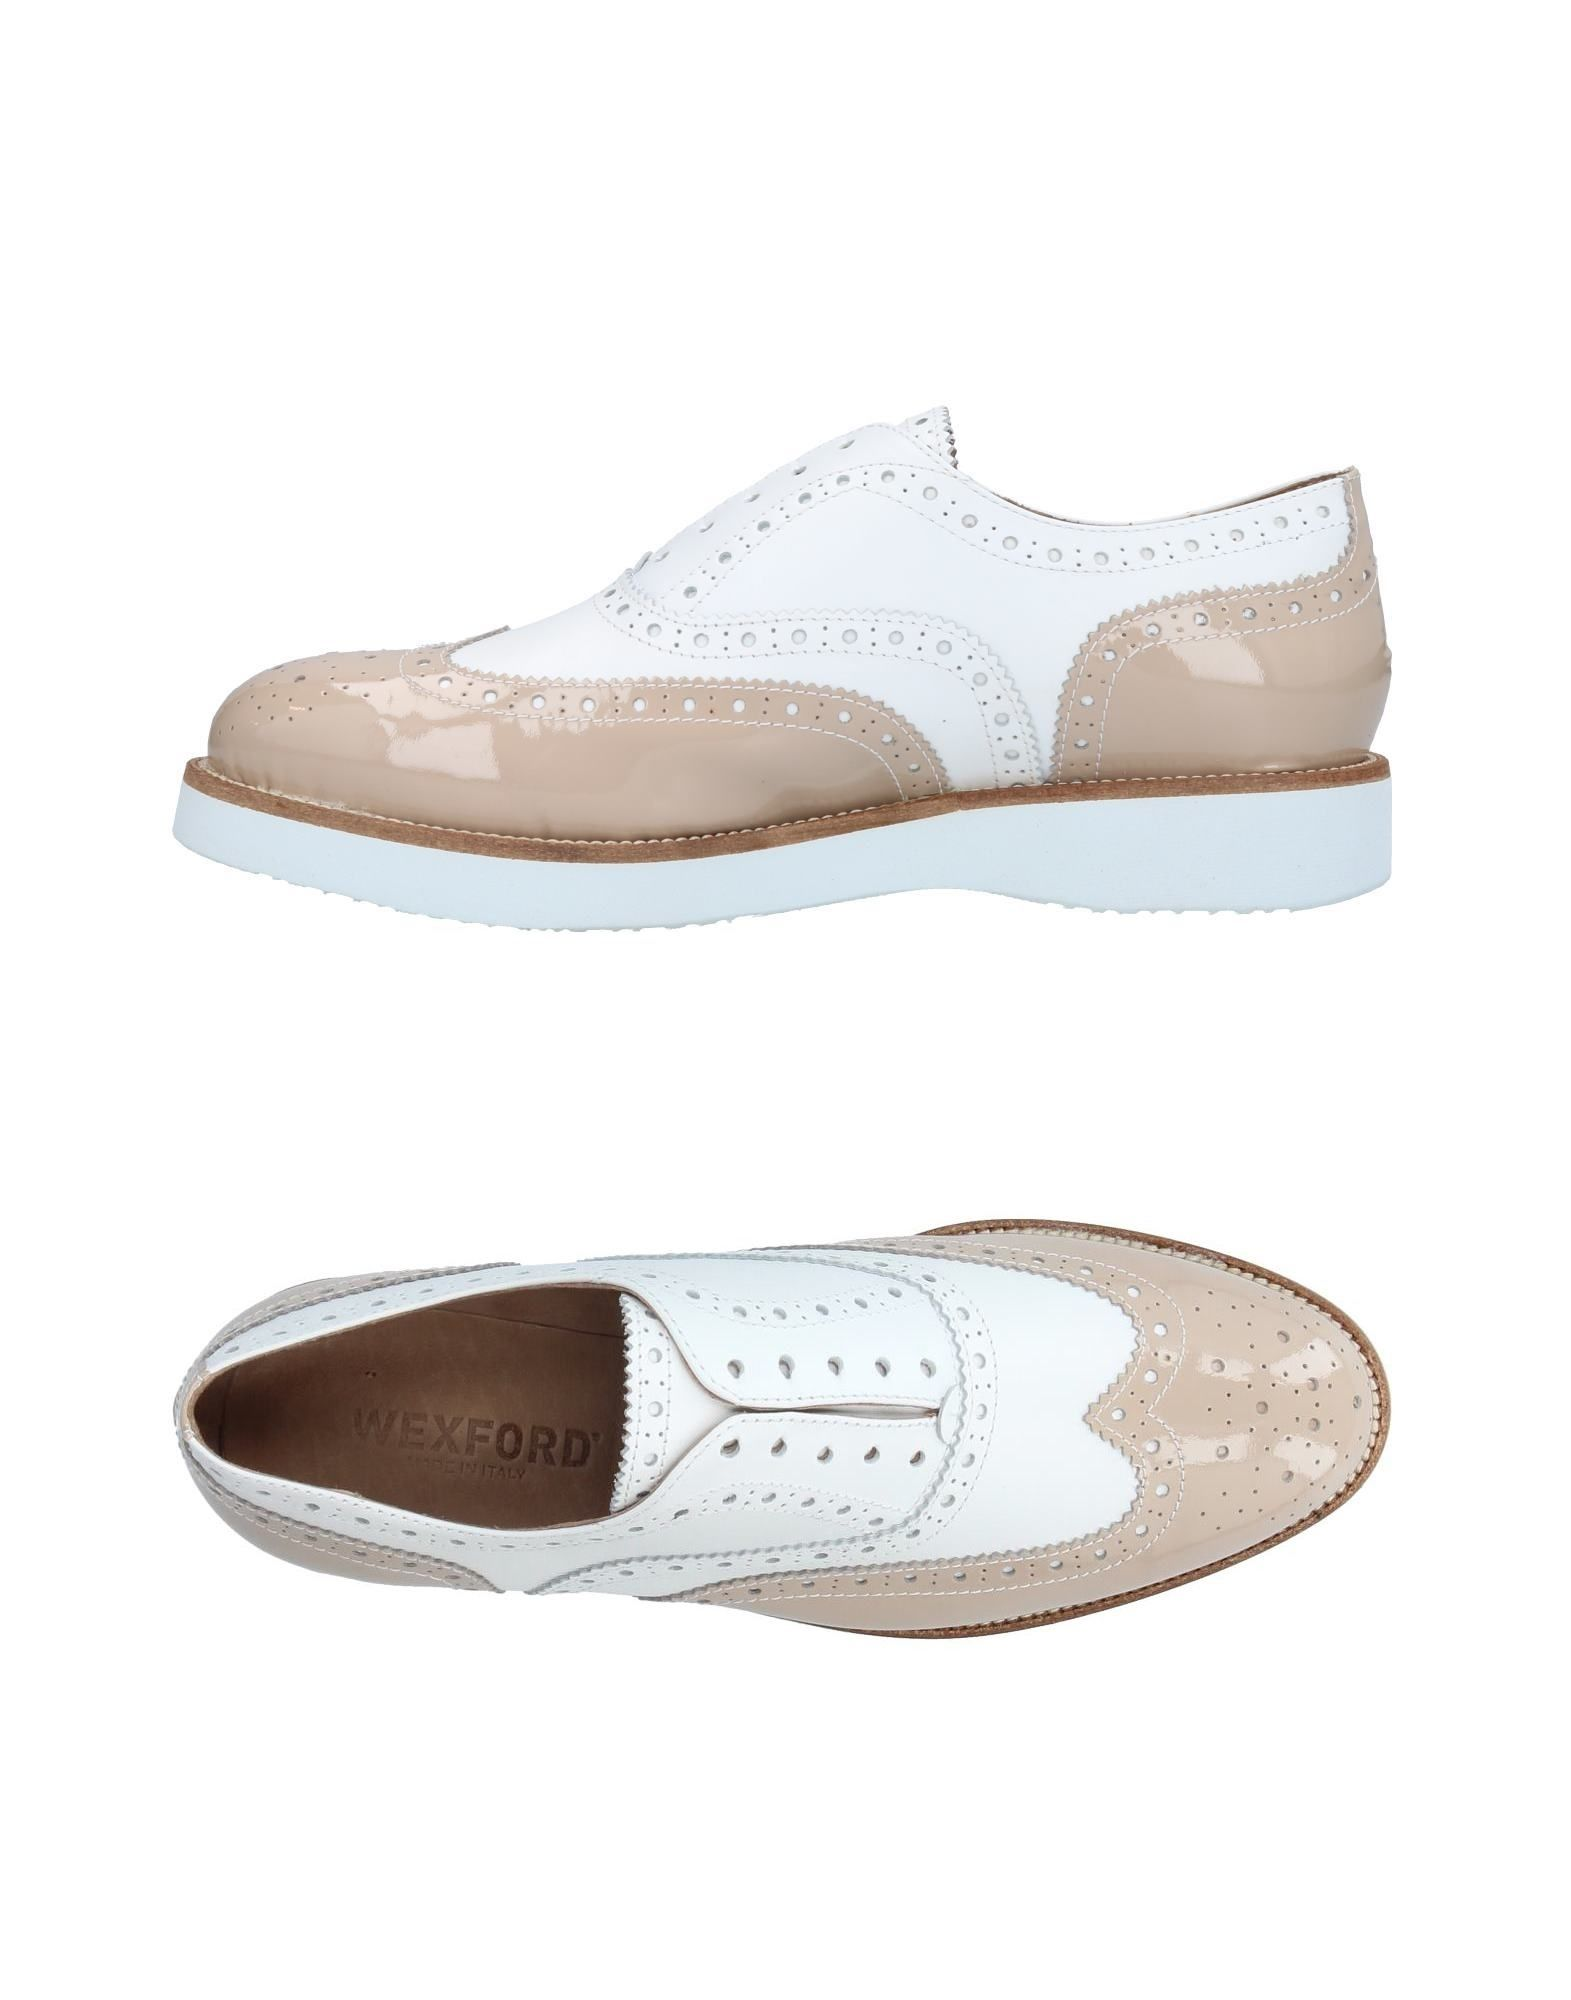 CHAUSSURES - Chaussures à lacetsWexford 4LSe8Gqiq